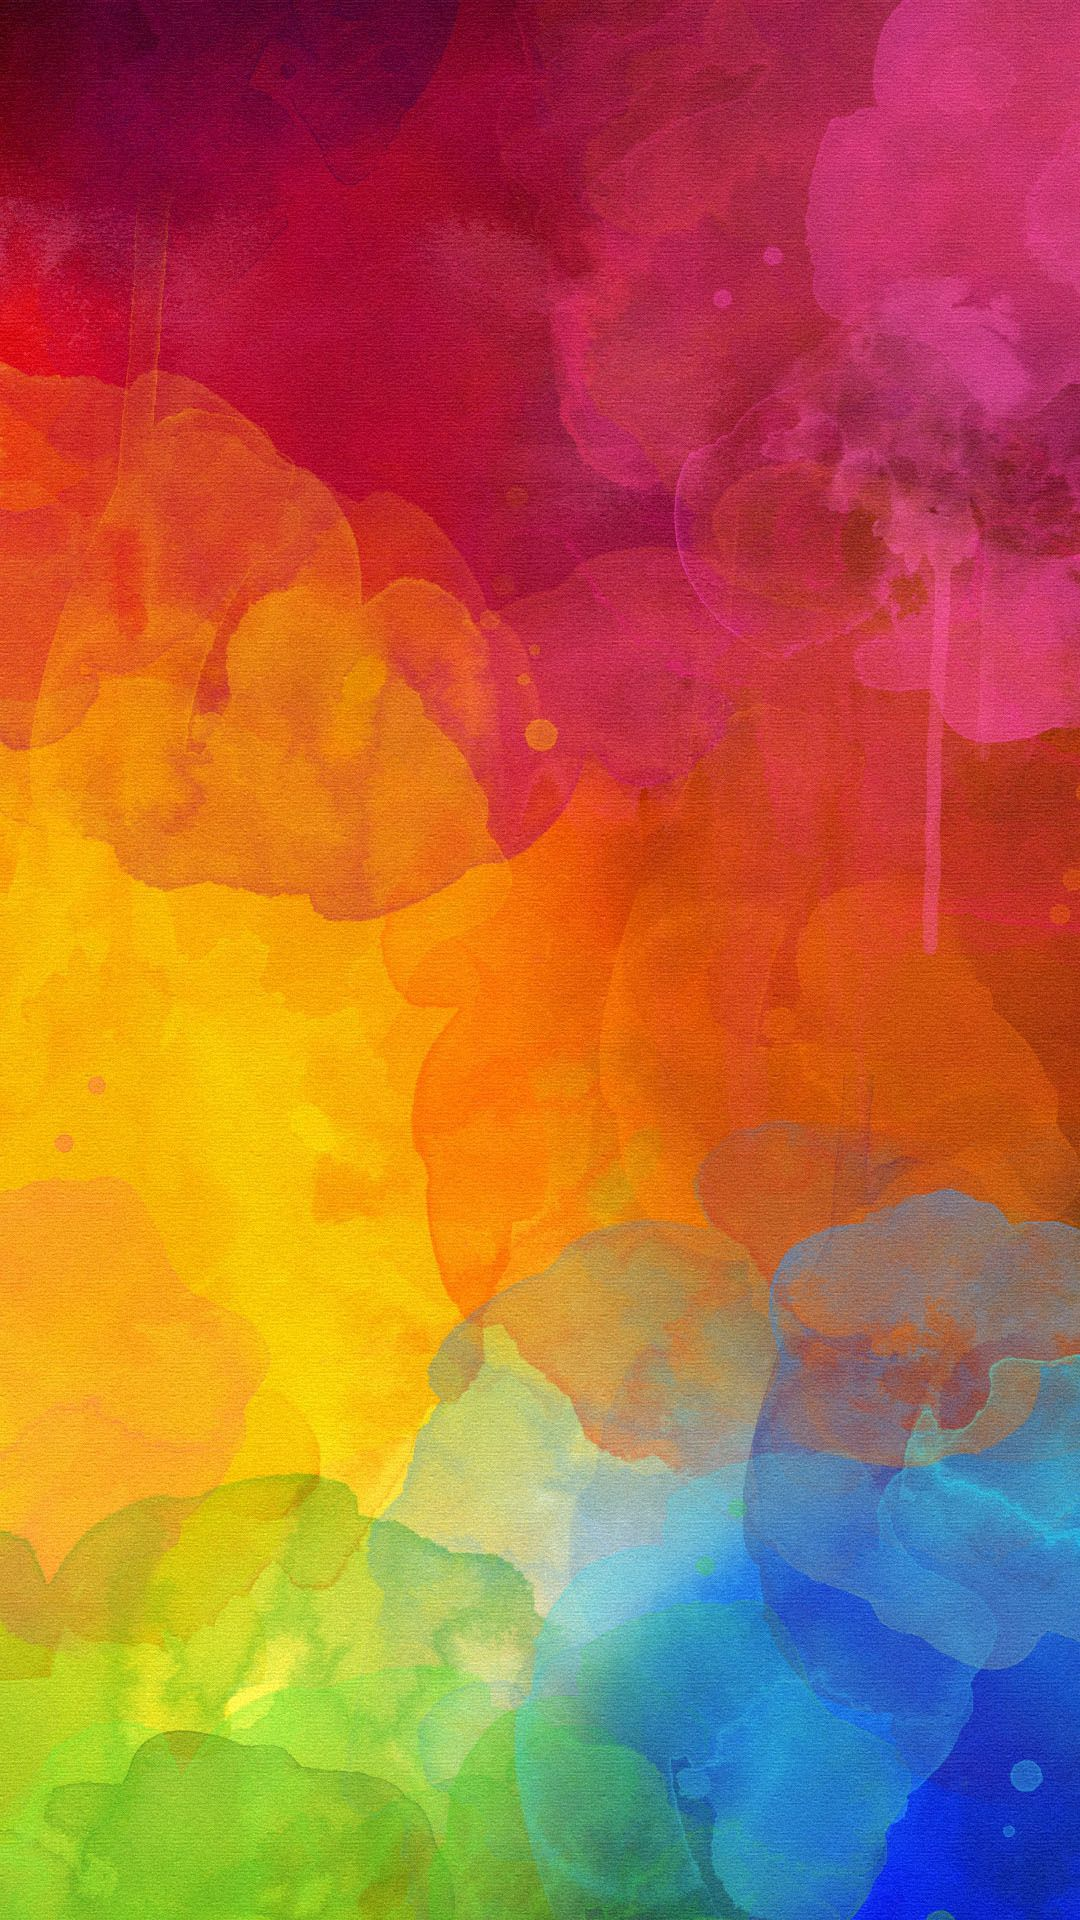 Colourful Watercolour Mark. Color of rainbow in abstract